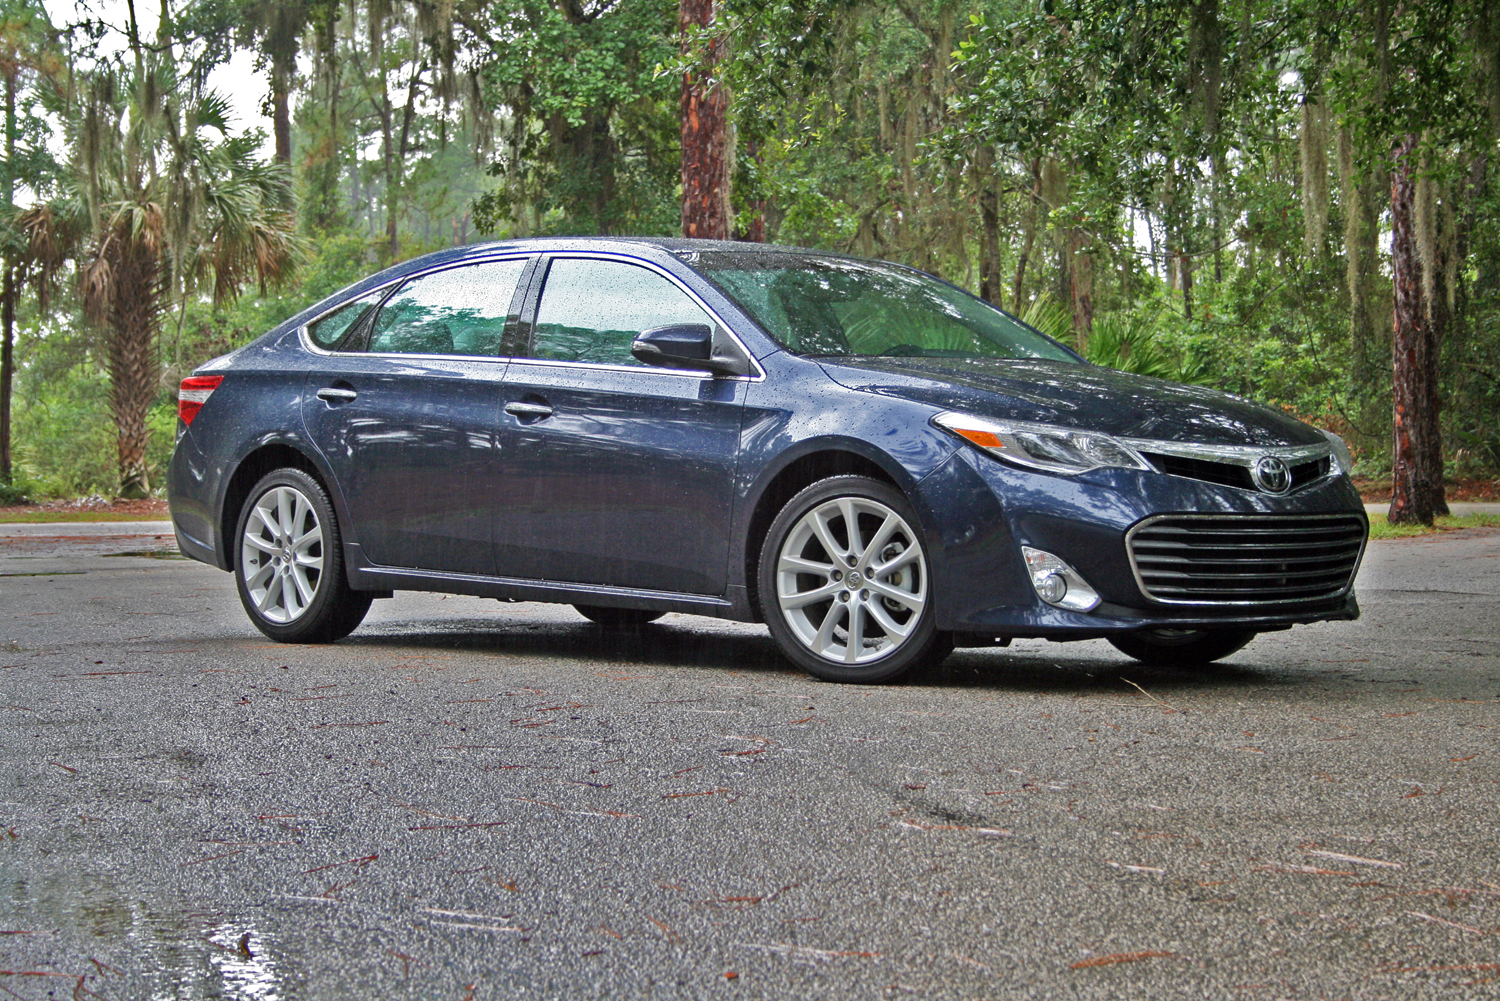 2014 toyota avalon driven review gallery top speed. Black Bedroom Furniture Sets. Home Design Ideas